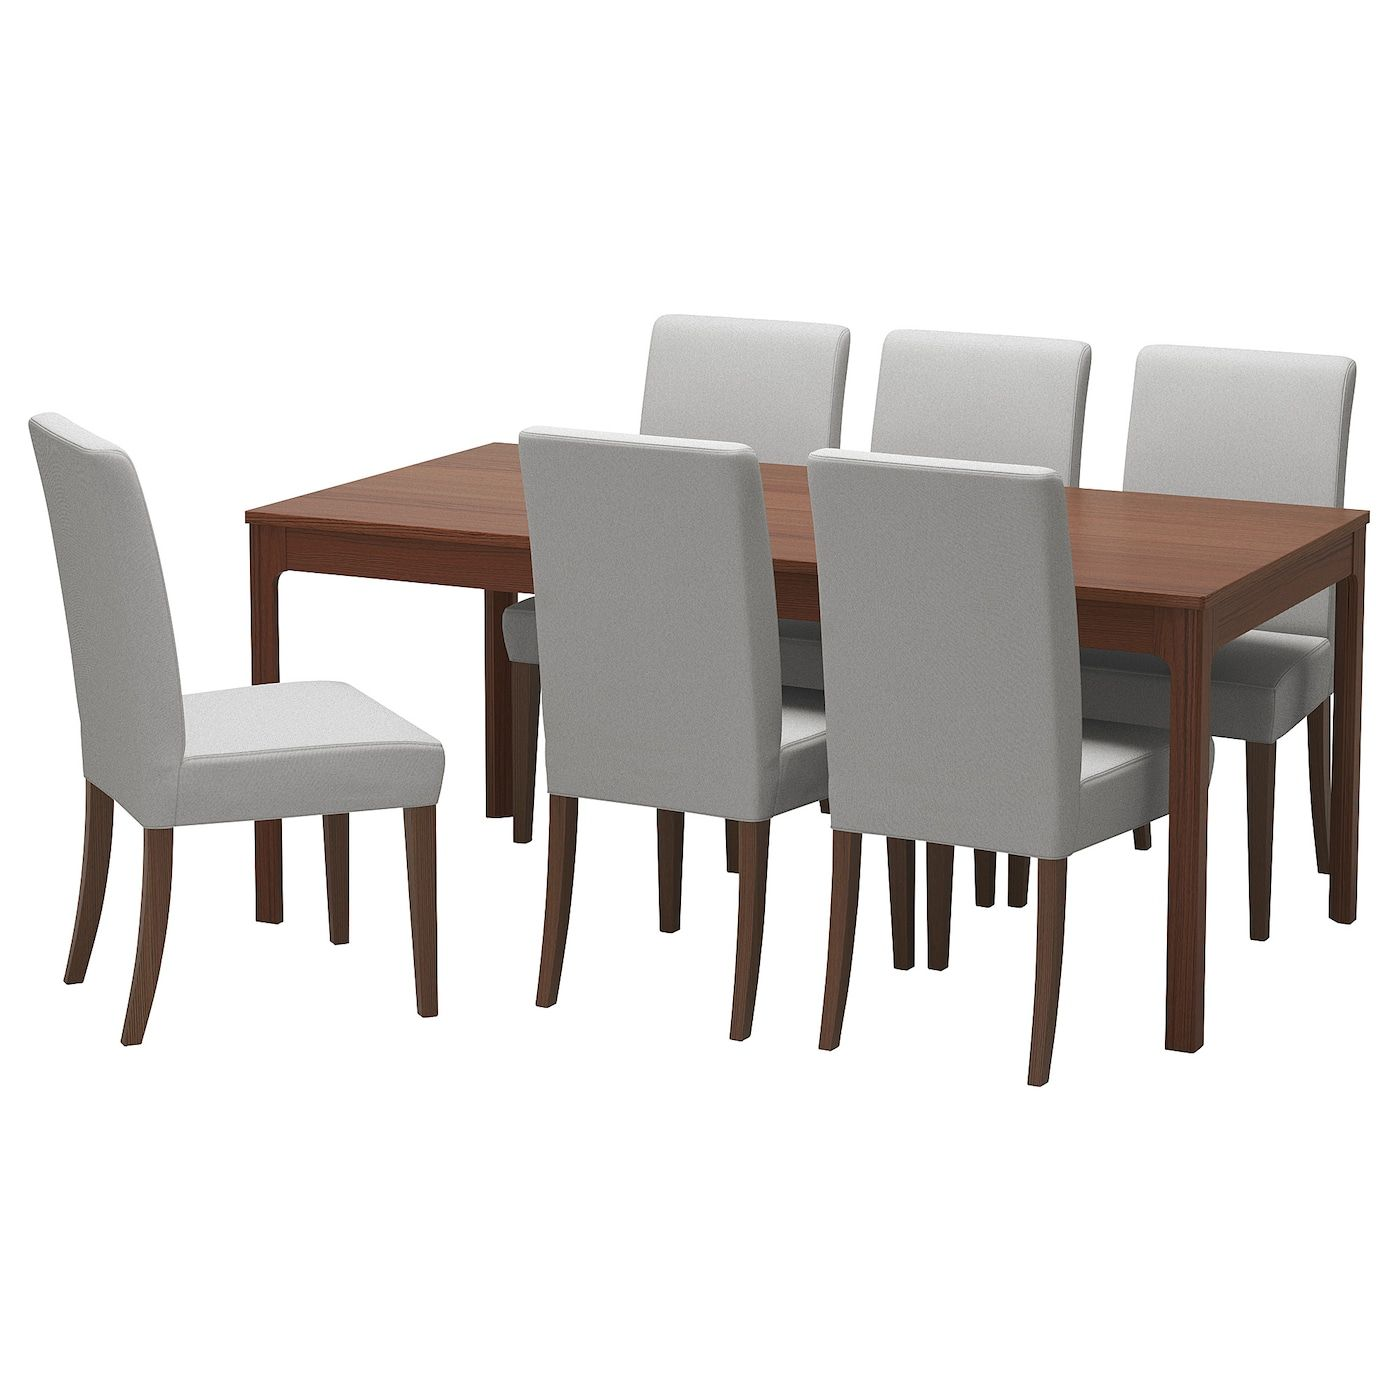 Ekedalen Henriksdal Table And 6 Chairs Brown Orrsta Light